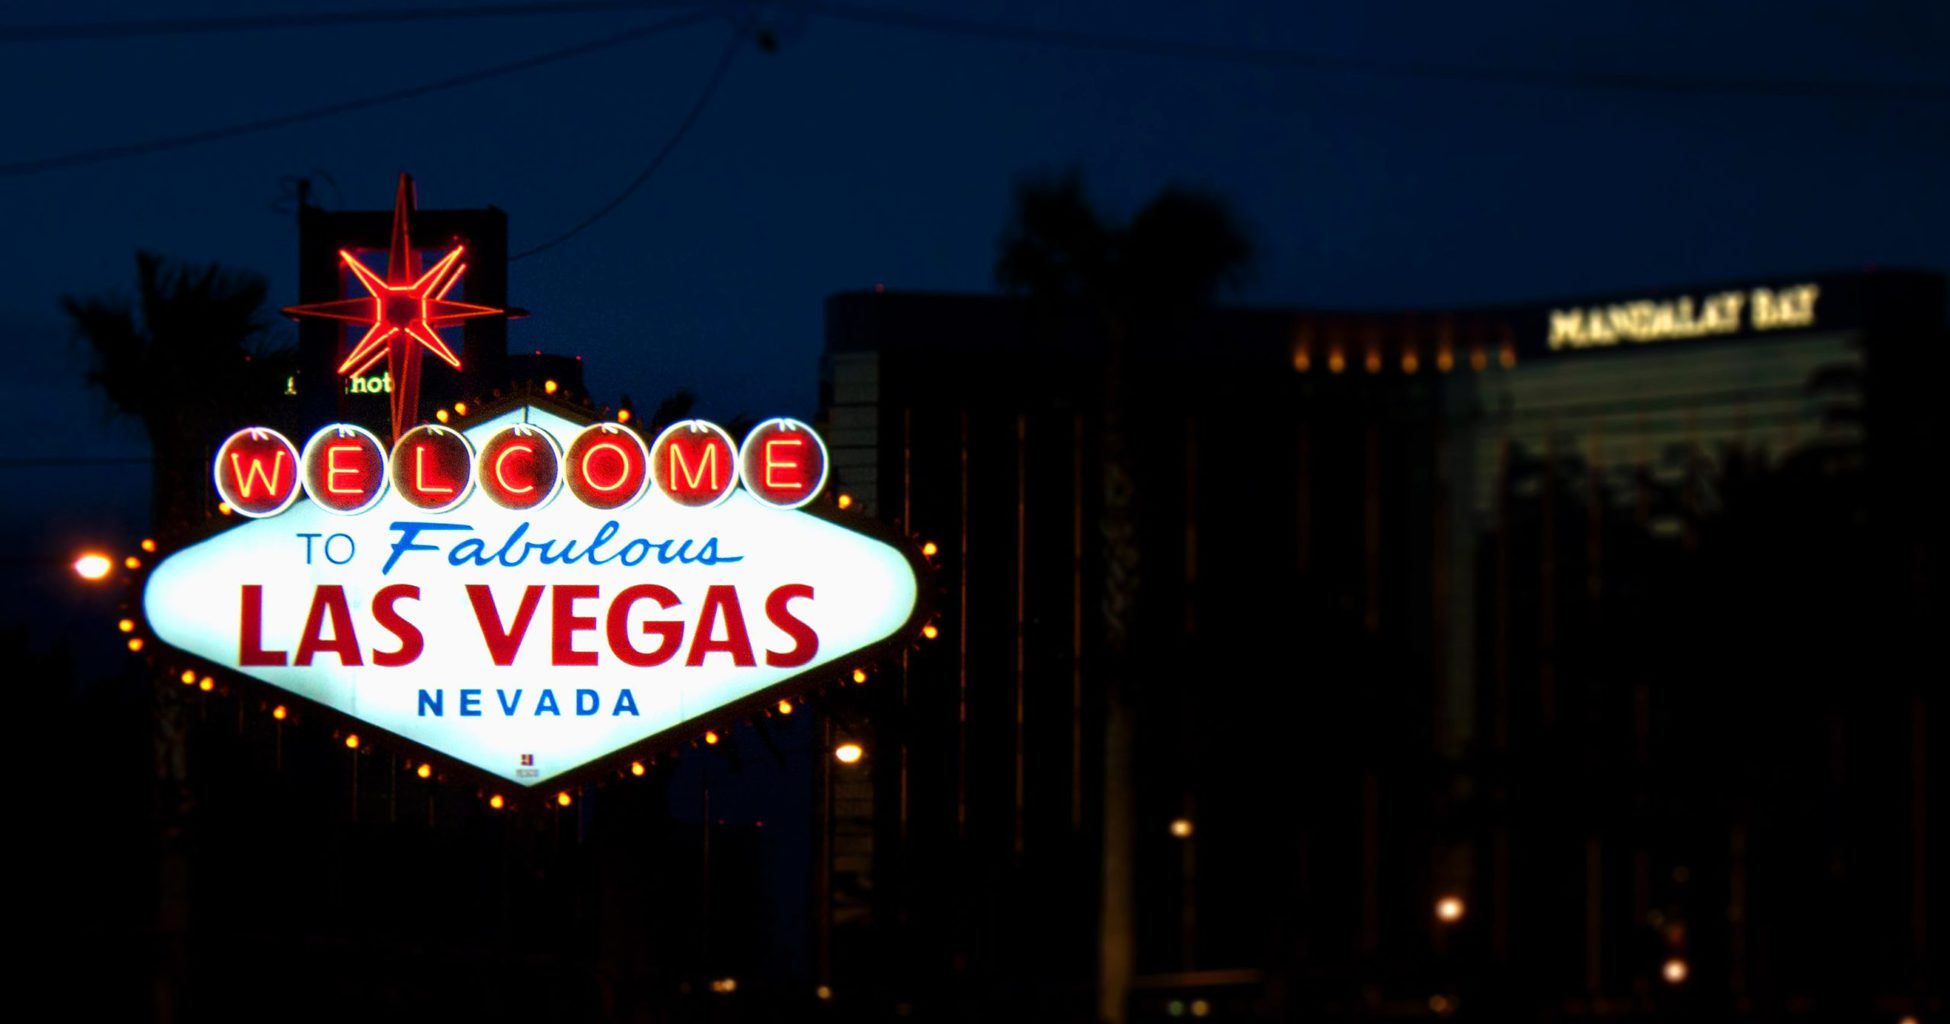 Las Vegas – The Popular Sin City